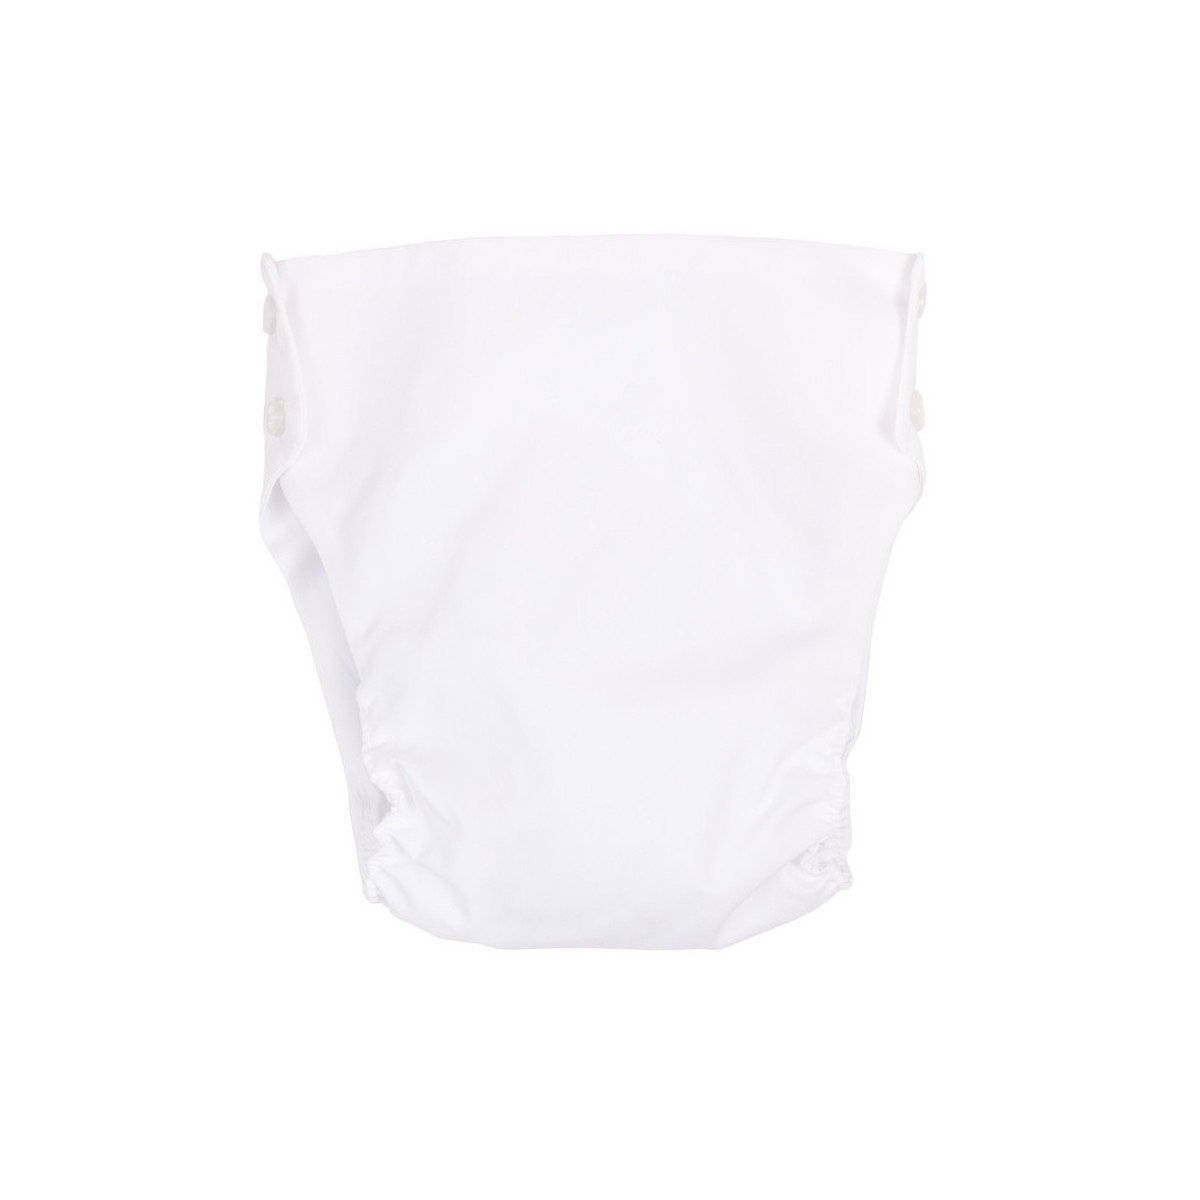 Dalton Diaper Cover